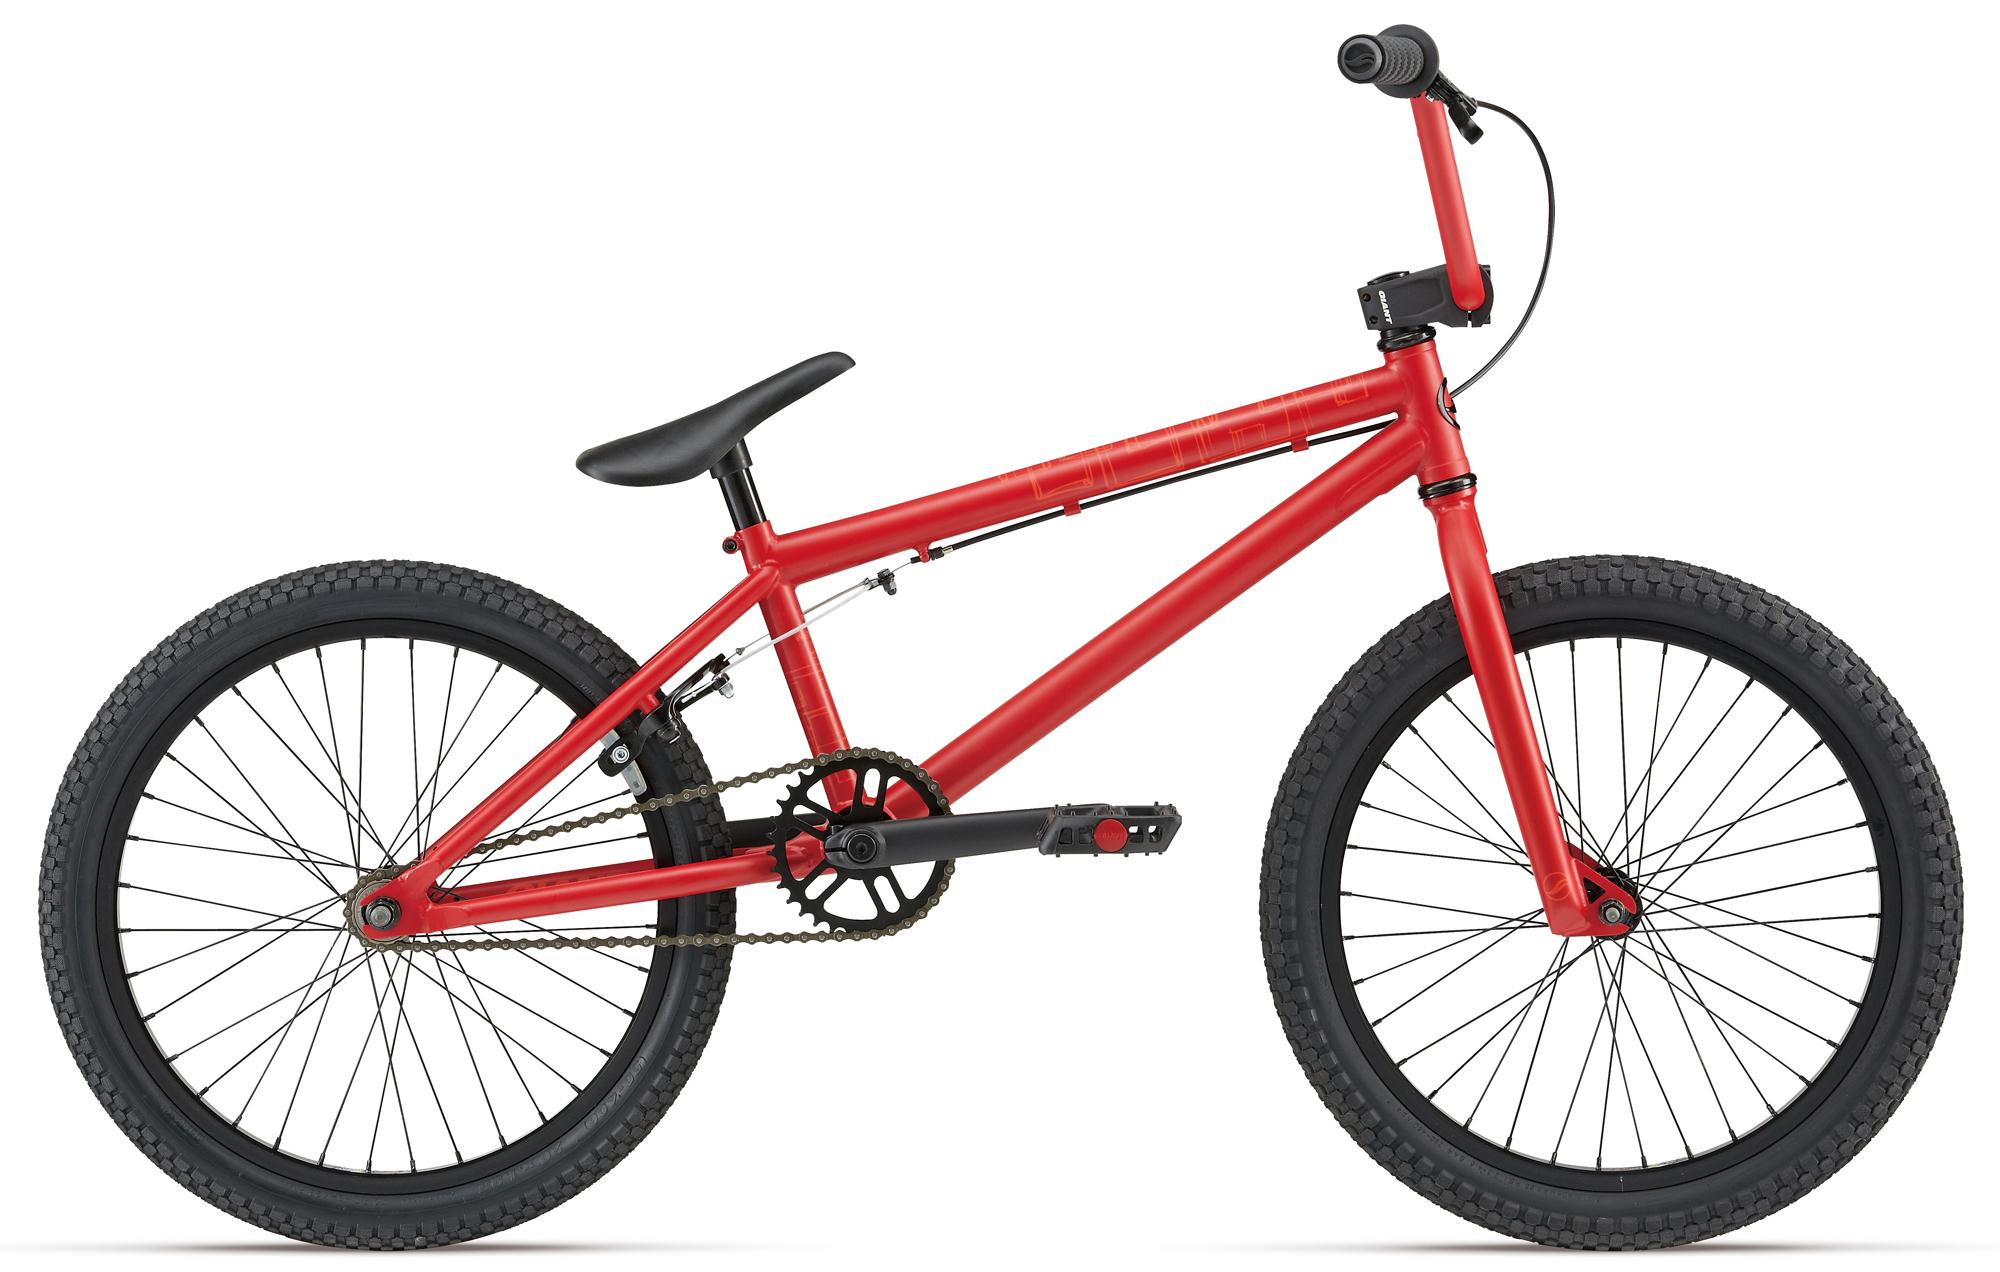 http://www.giant-bicycles.com/_generated/_generated_ru/bikes/models/images/2000/2012/Method_03_red.jpg